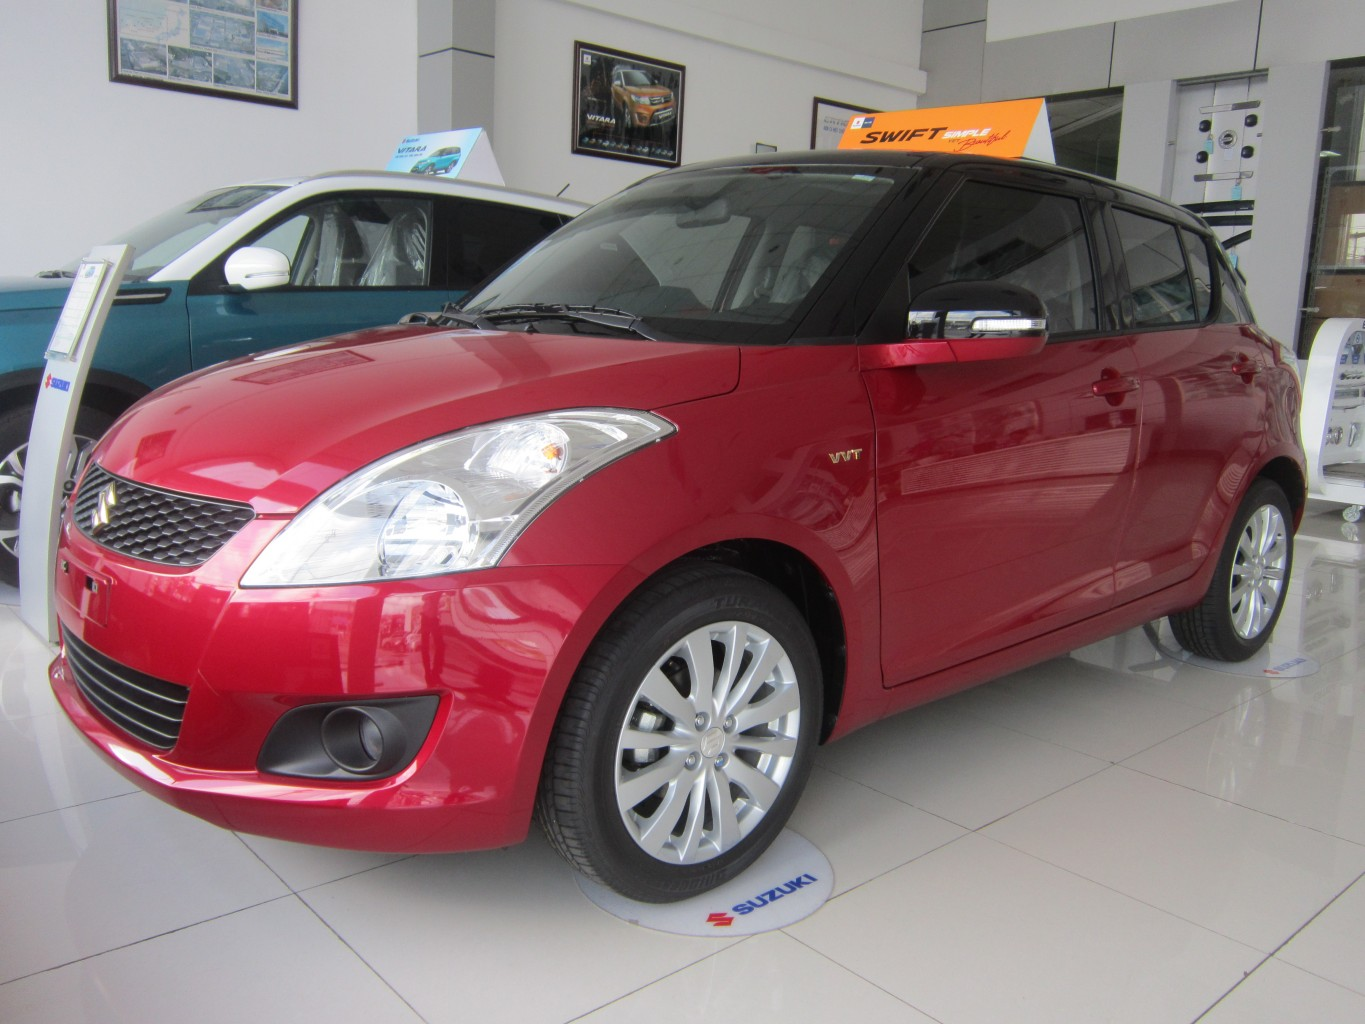 Suzuki Swift 9